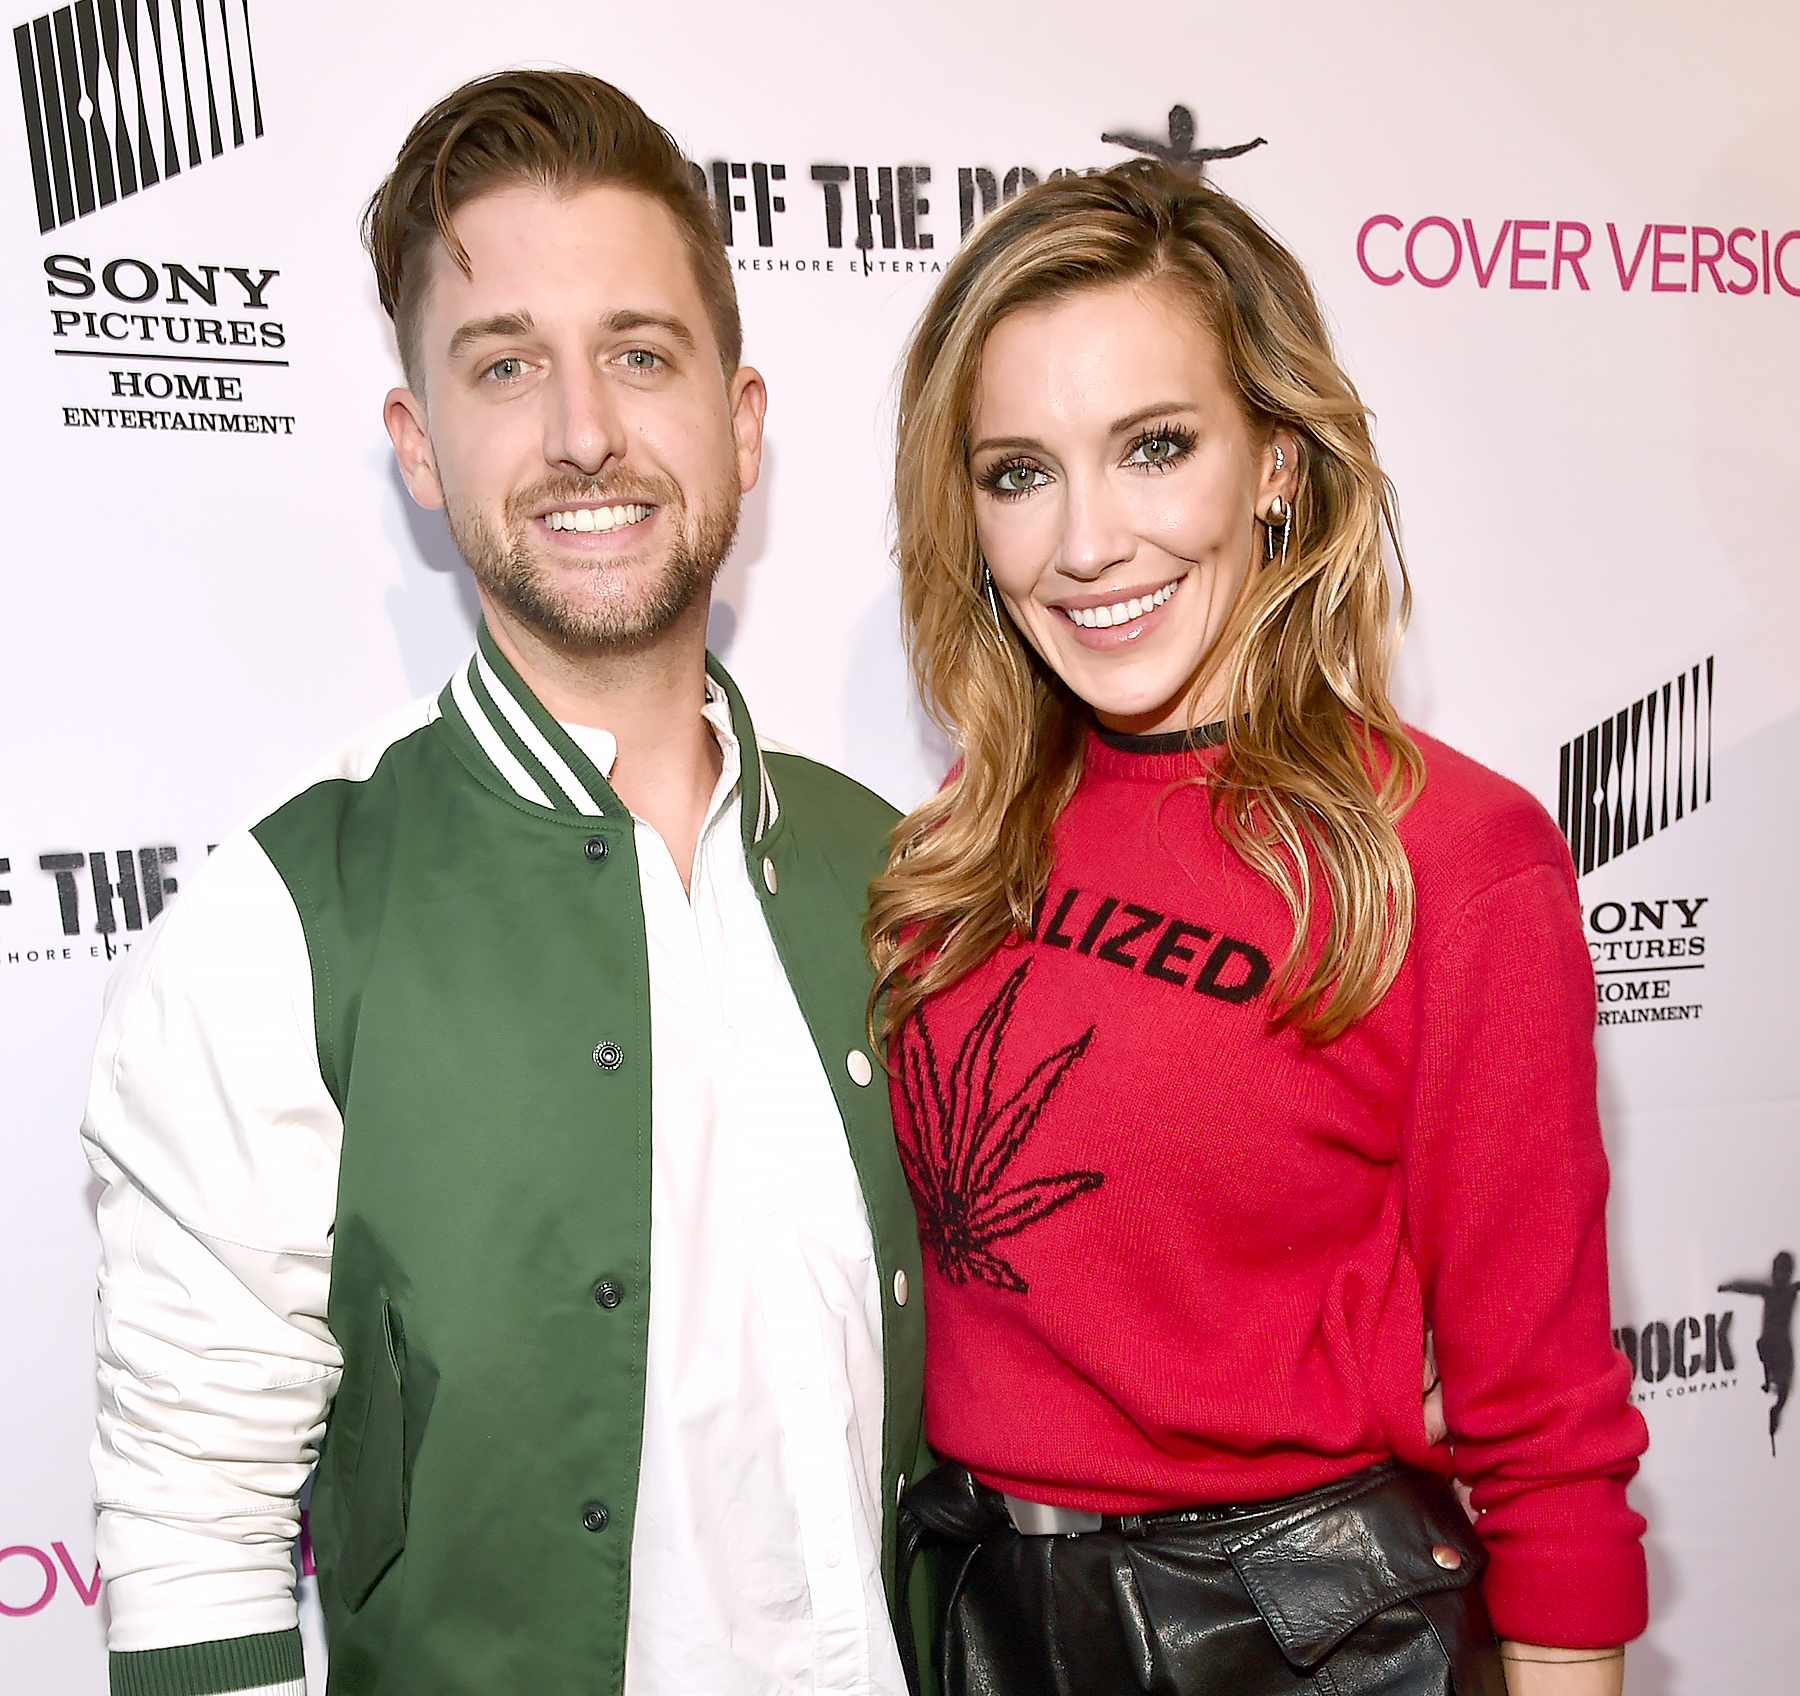 katie-cassidy-marries-matthew-rodgers - The Arrow actress tied the knot with Rodgers in December 2018 in a beach ceremony where she wore a stunning lace gown. Cassidy took to Instagram at the time to give fans a look at their nuptials.